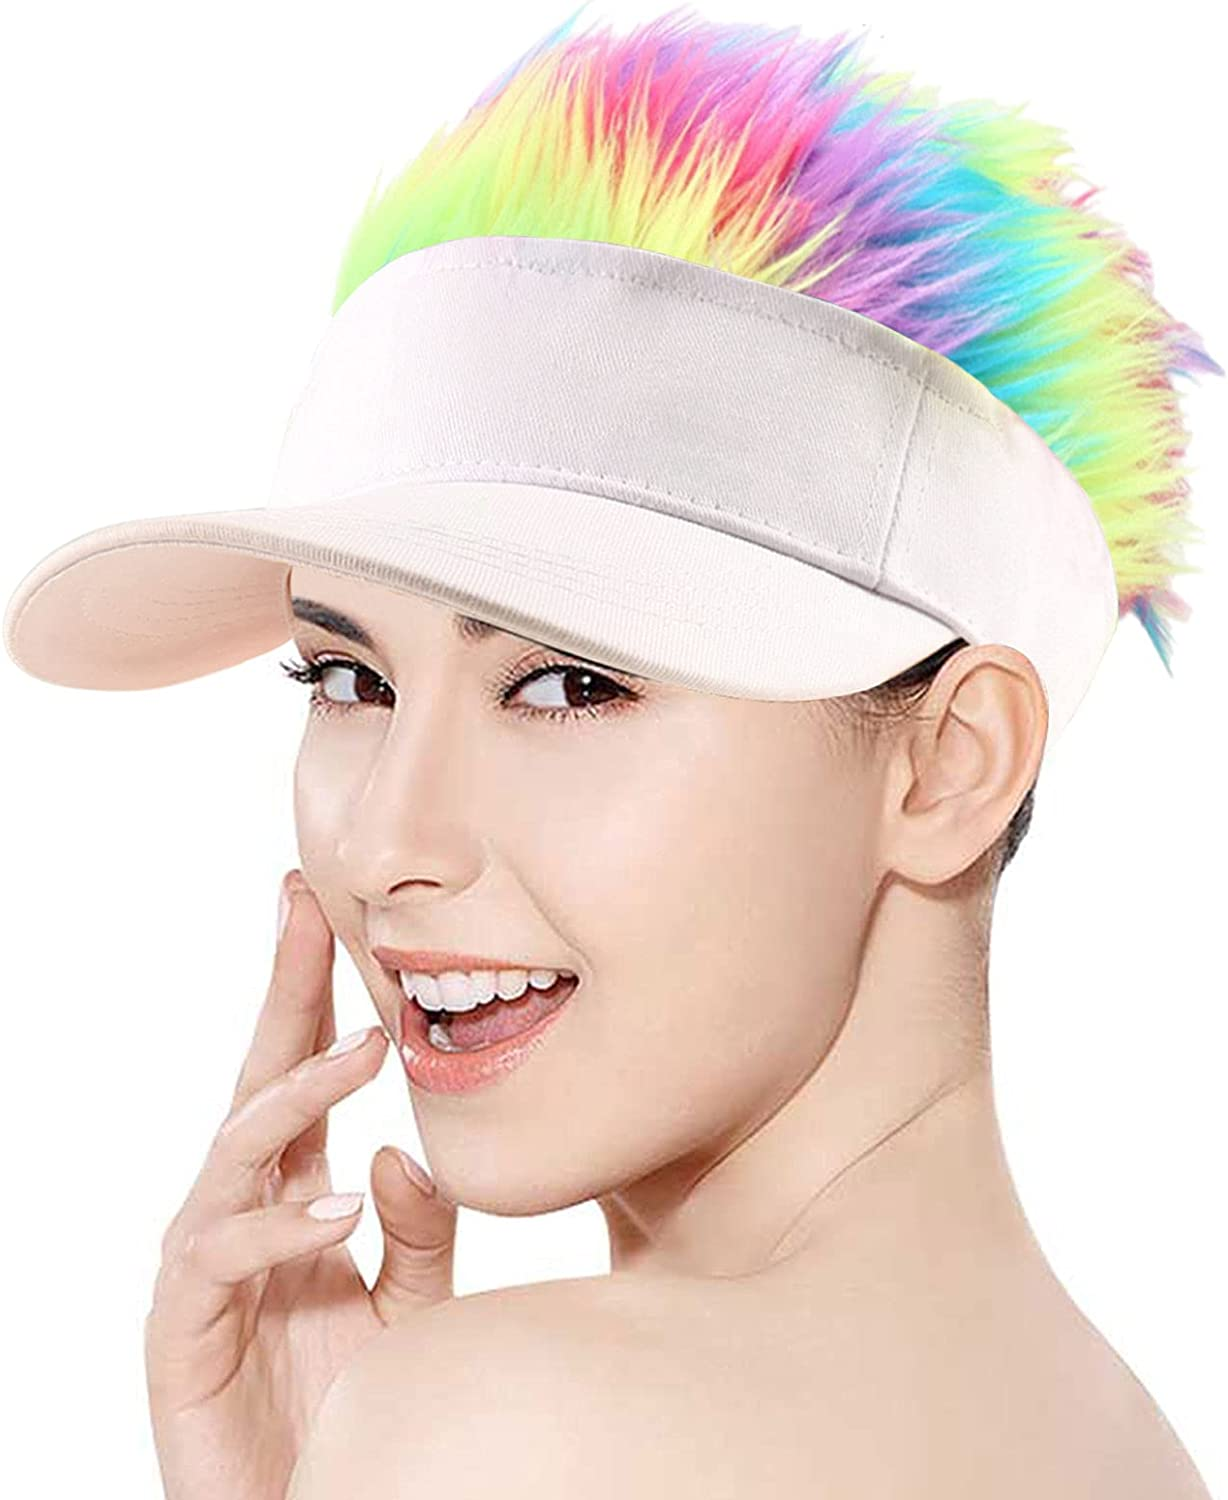 Regilt outlet Adjustable Sun Visor Hat with Wig Spiked Max 52% OFF Fashion Ba Hairs